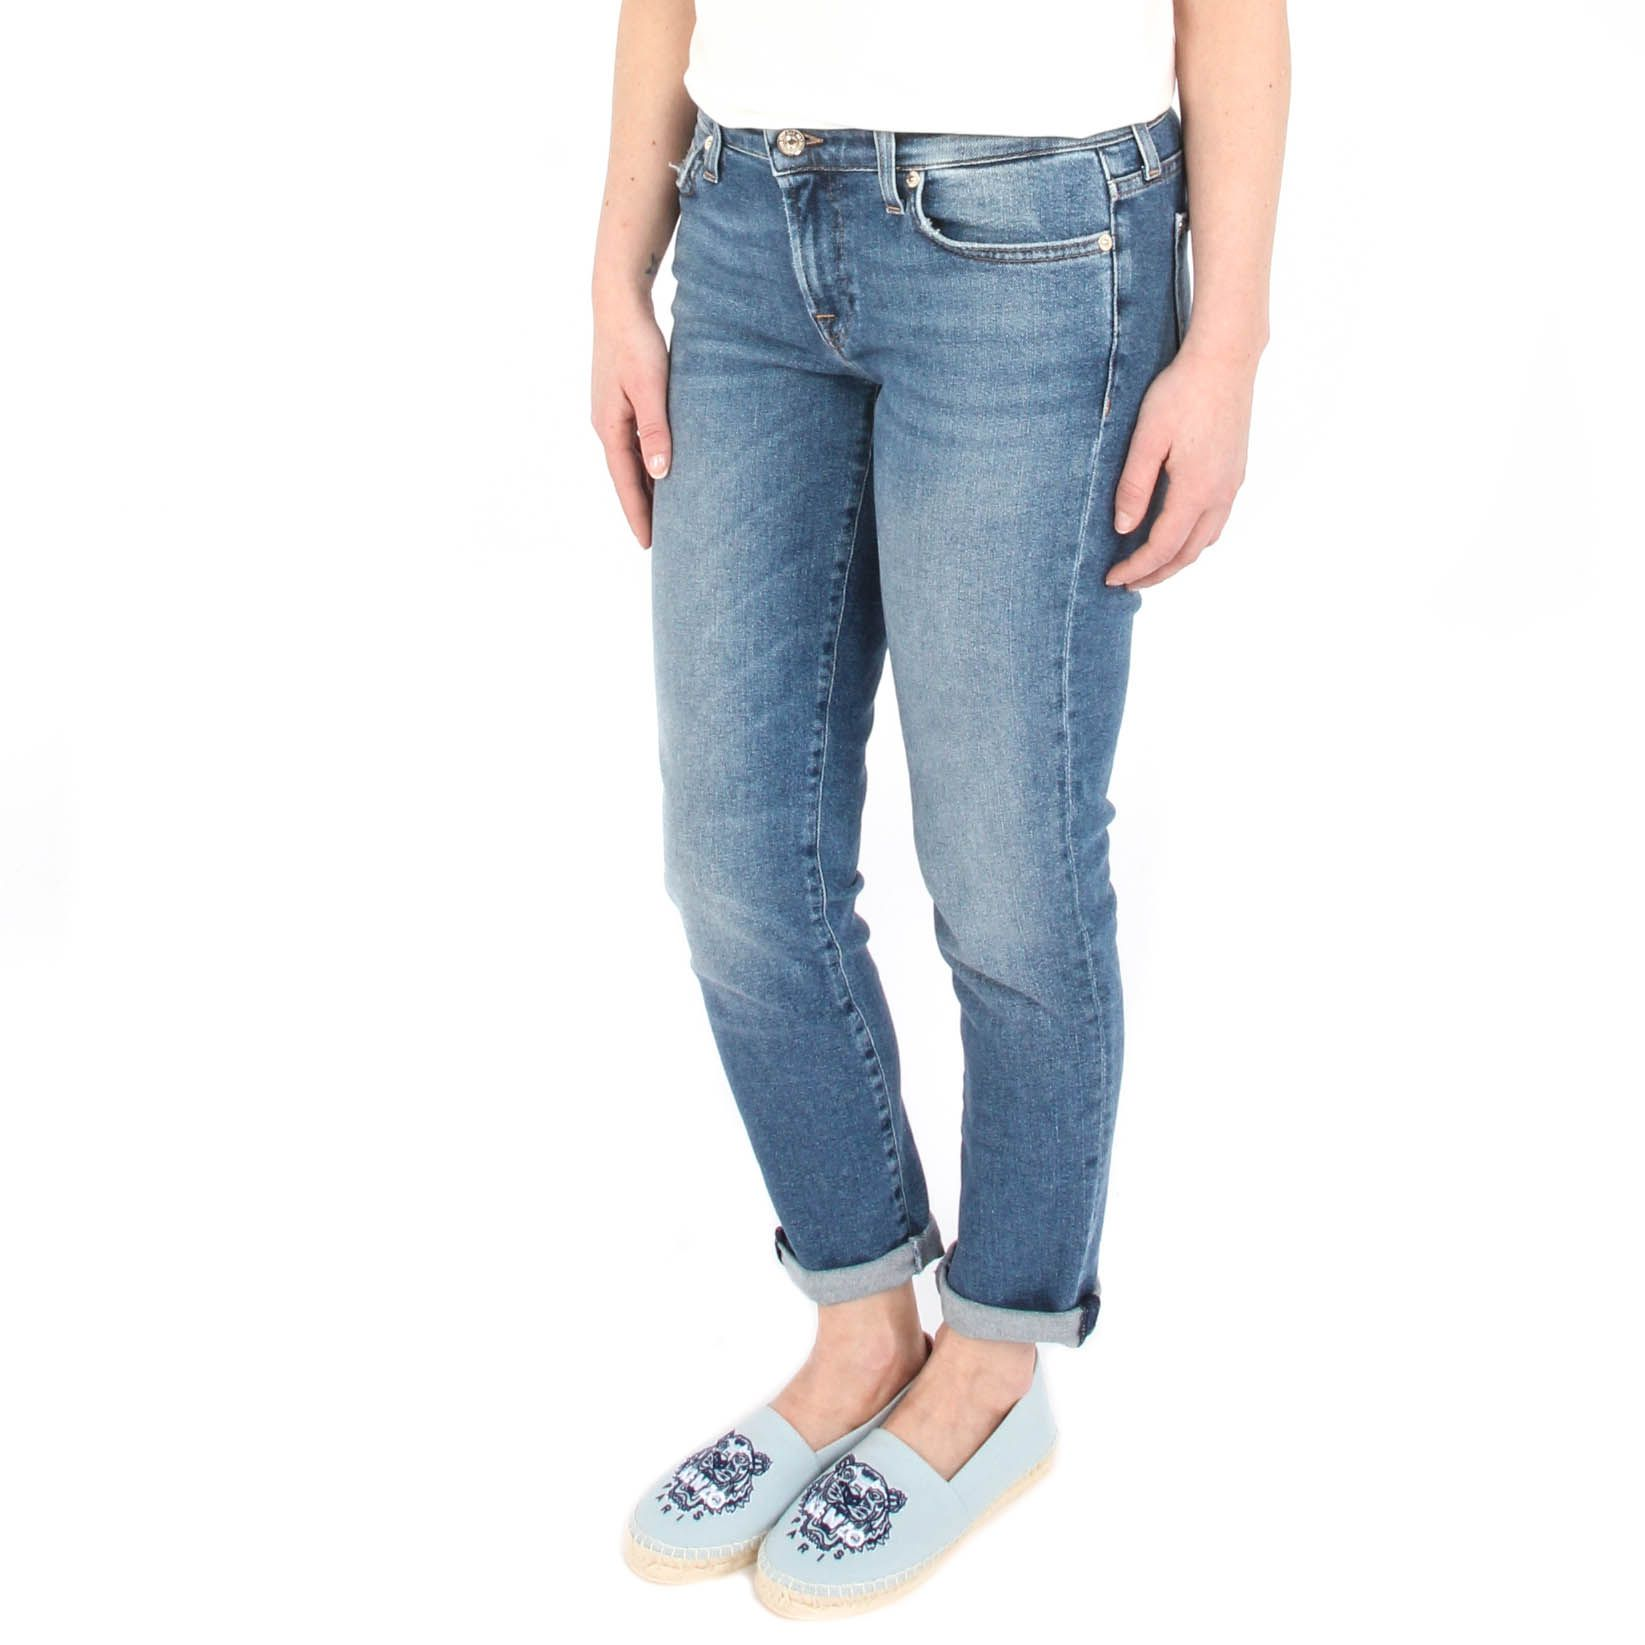 7 for all mankind Pyper Crop Luxe Vintage